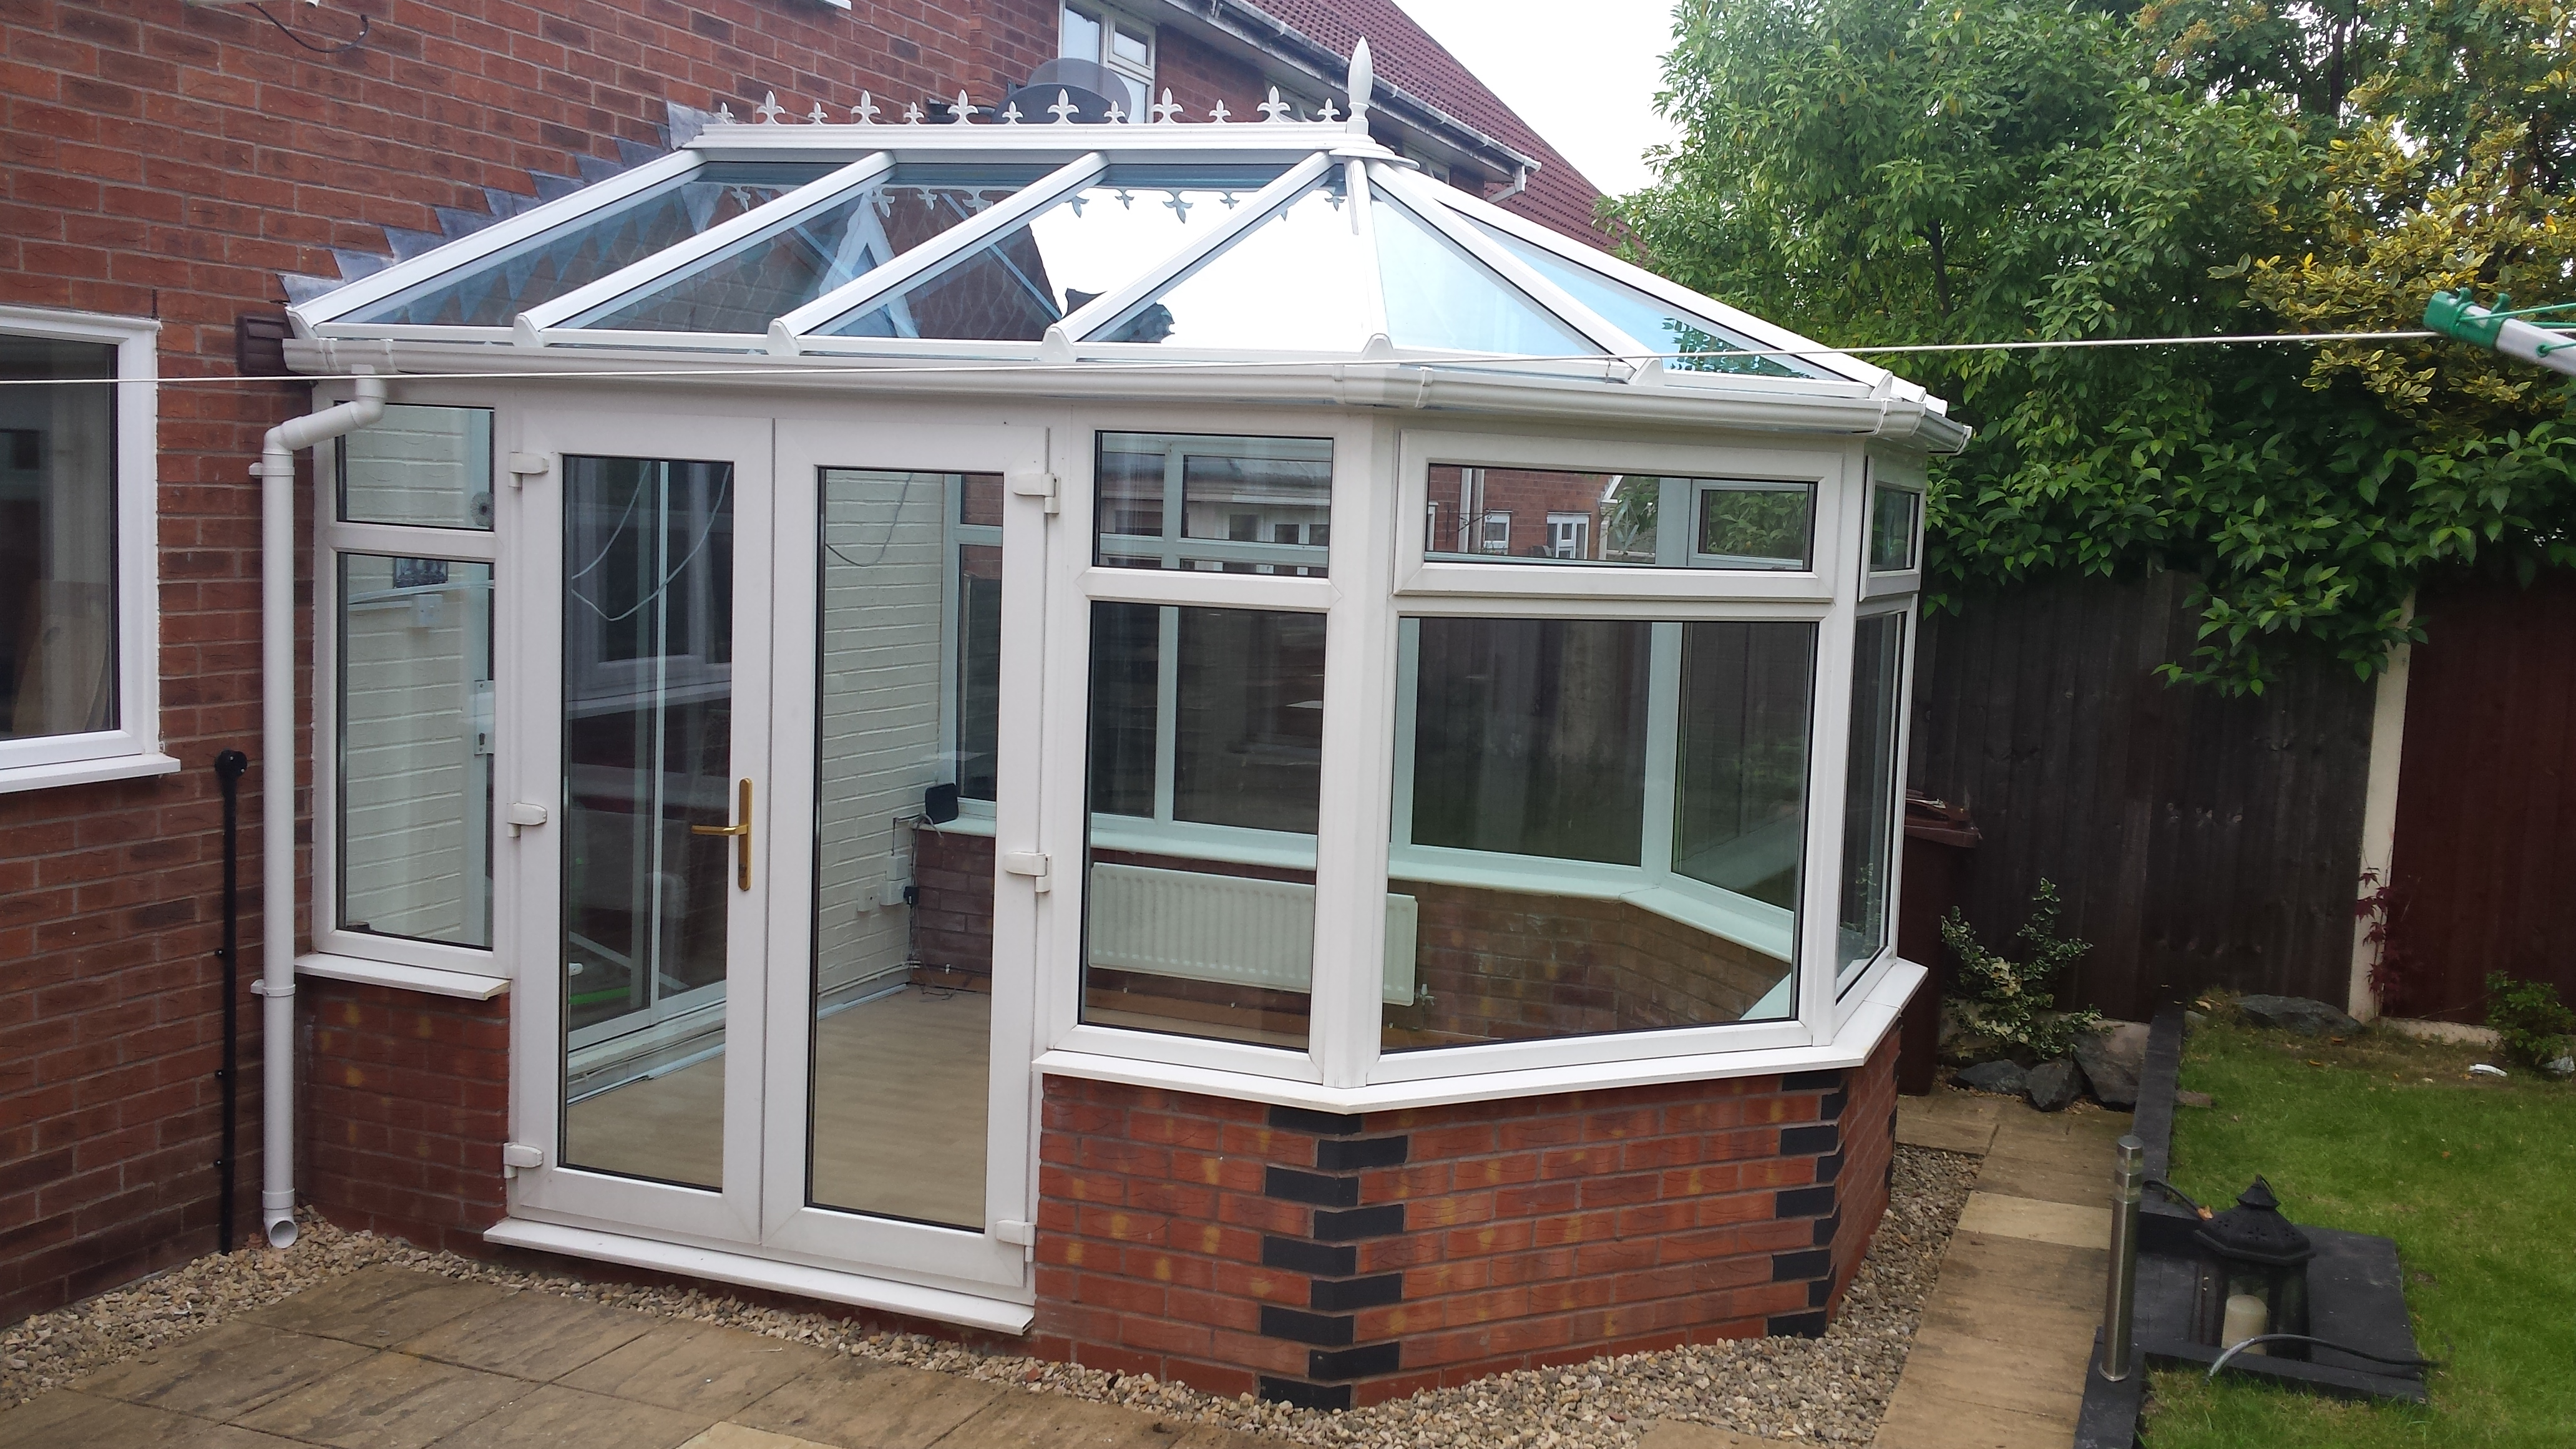 Conservatory glass roof replacement